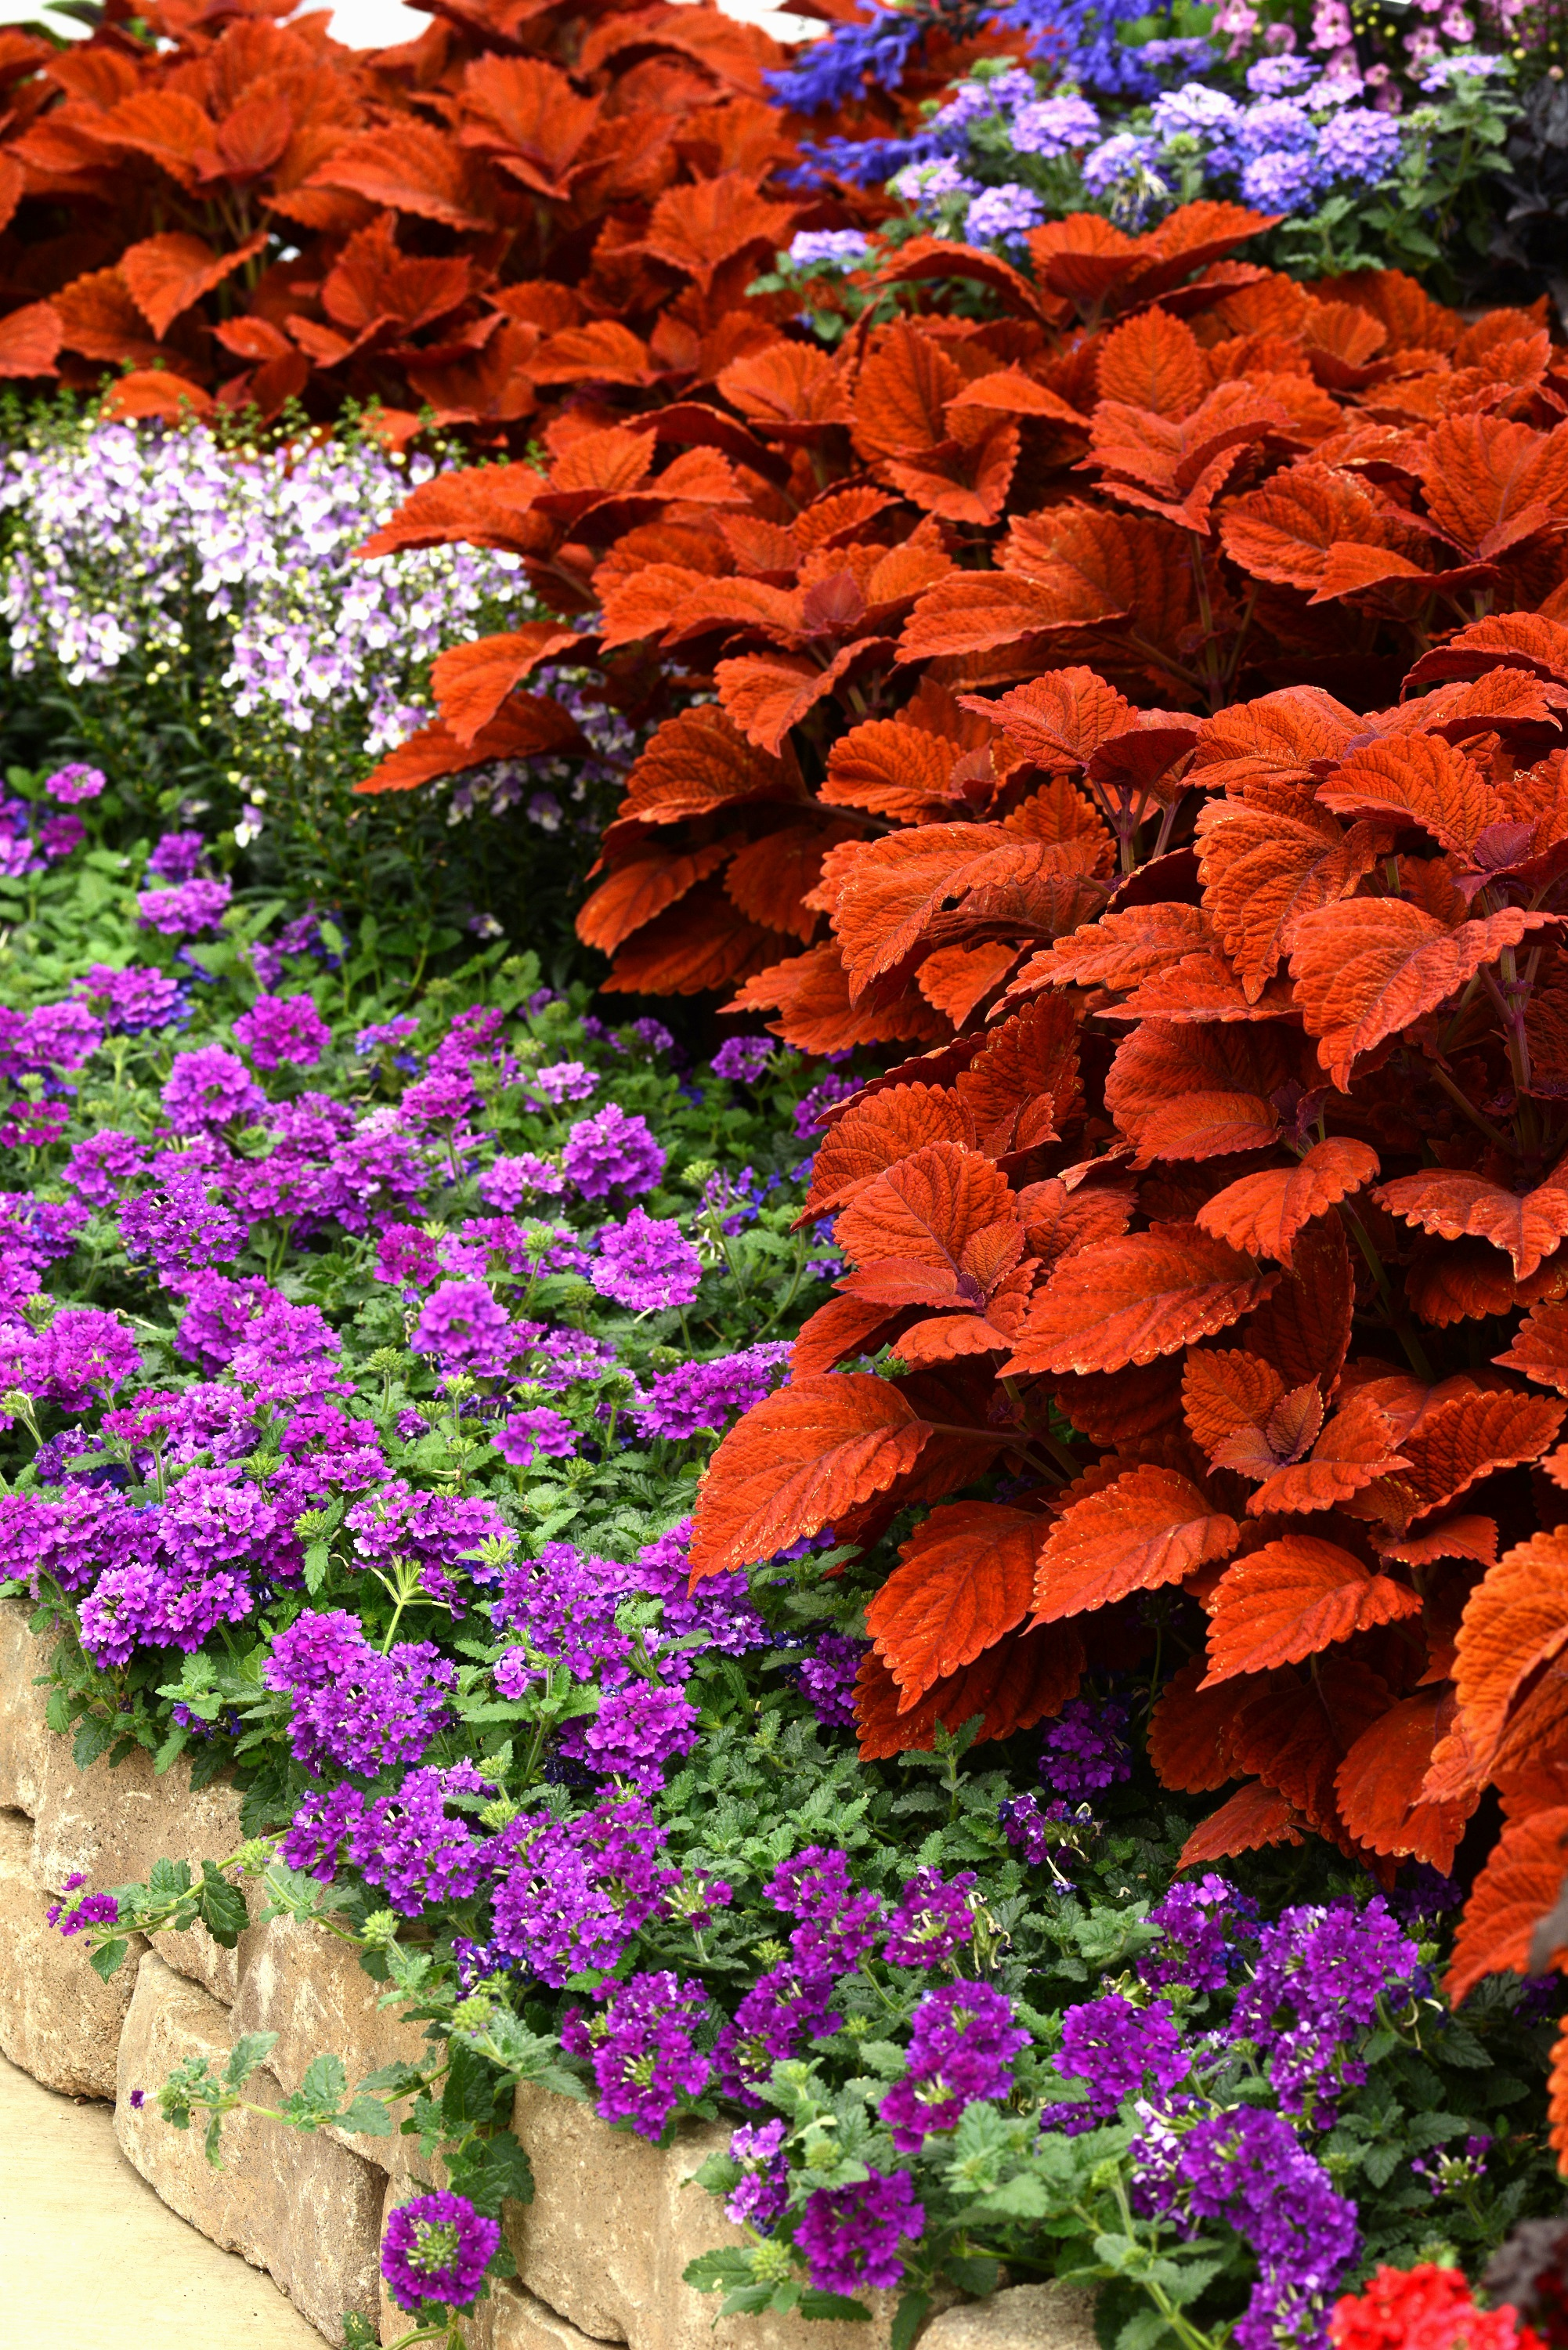 'Inferno' coleus offers stunning orange leaves that look like an artist's masterpiece when combined with all shades of blue.